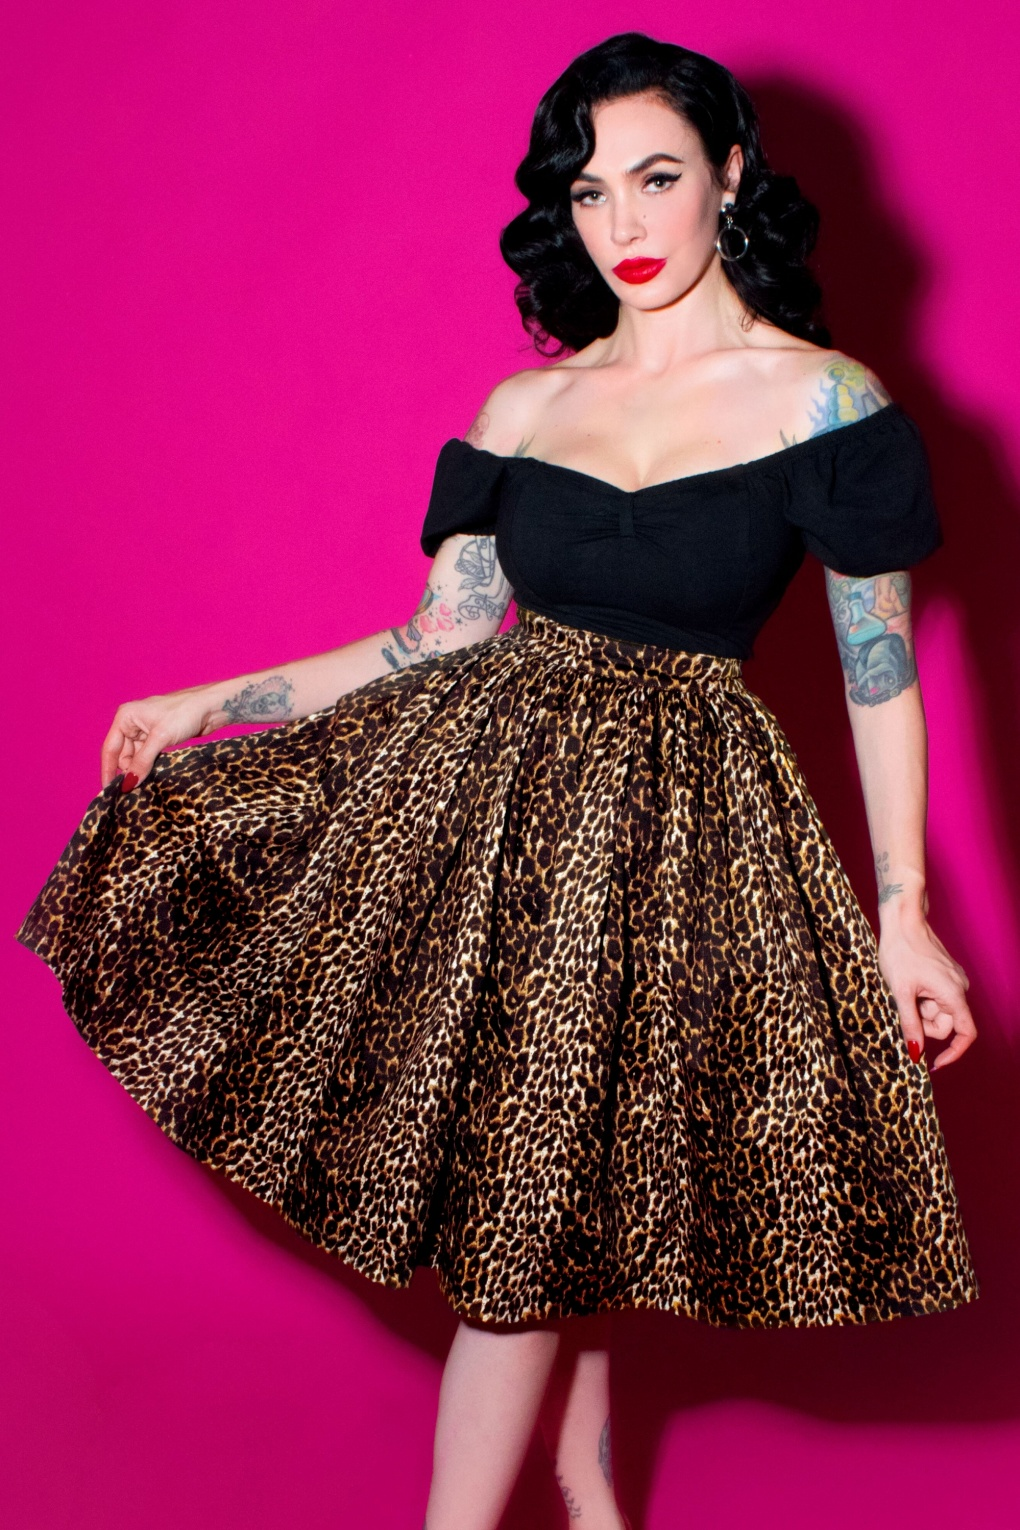 1950s Skirts for Sale: Poodle, Pencil, and Circle Skirts 50s Vixen Swing Skirt in Leopard £108.54 AT vintagedancer.com